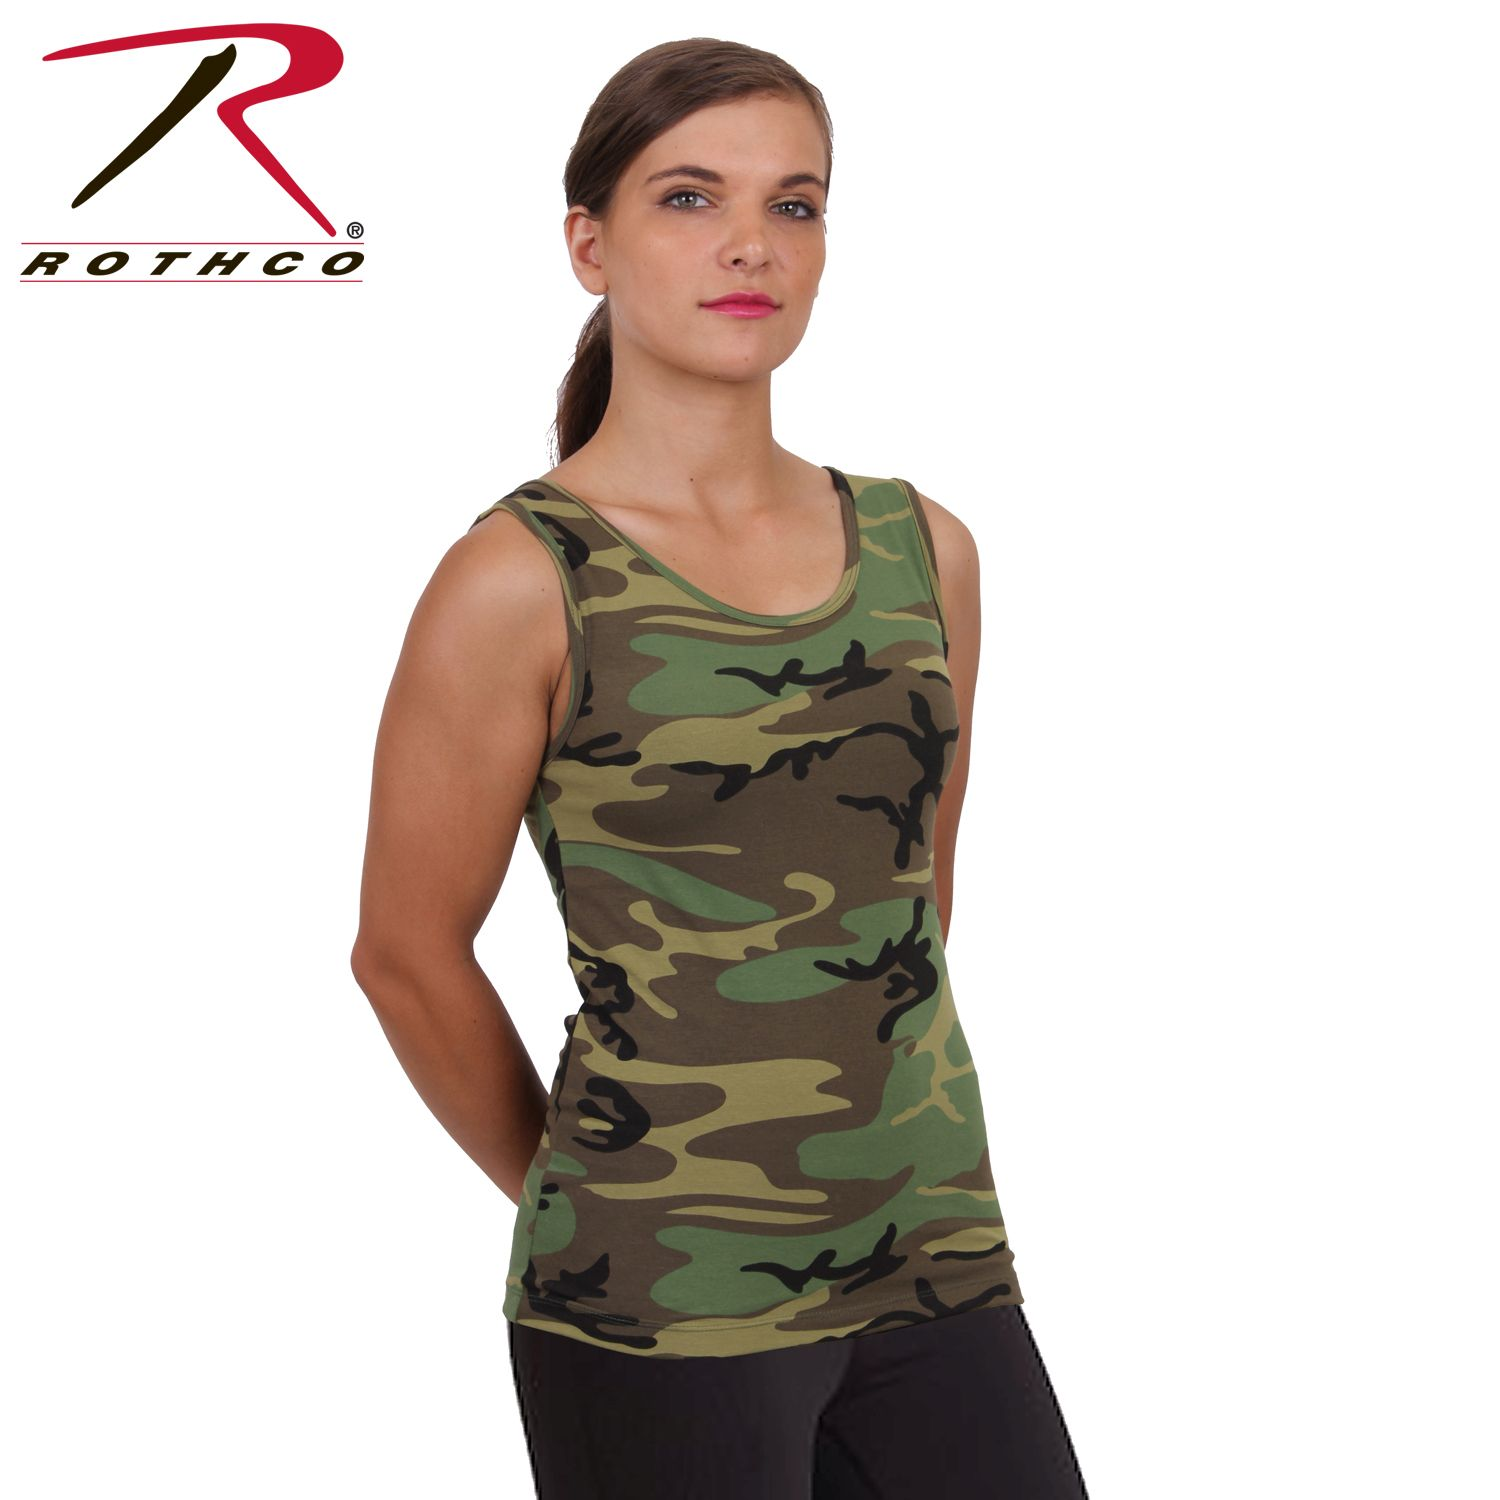 Athletic Performance Wear